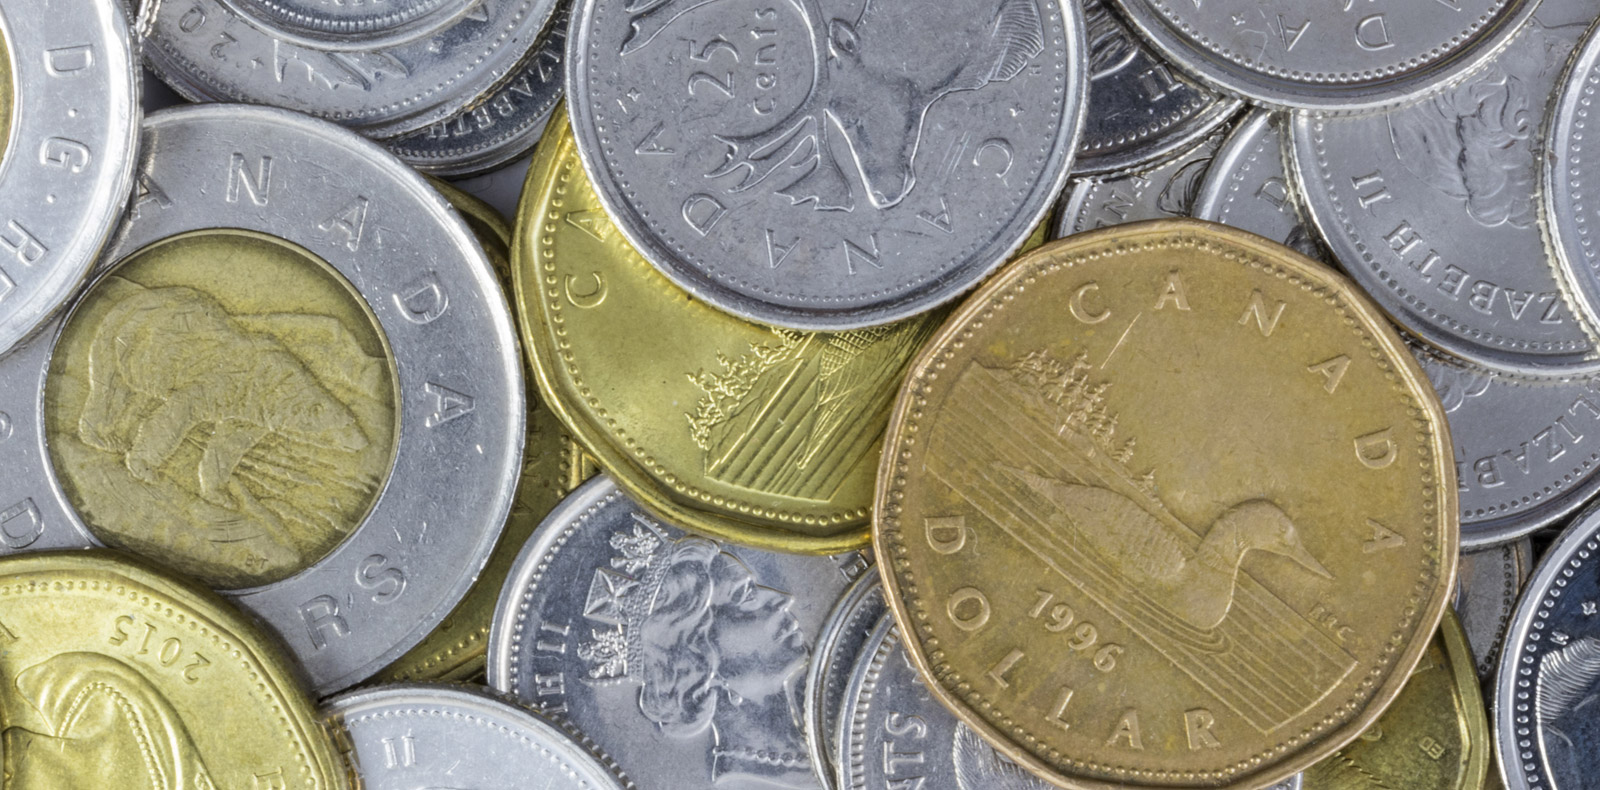 Will the Canadian Dollar's gradual rise continue?